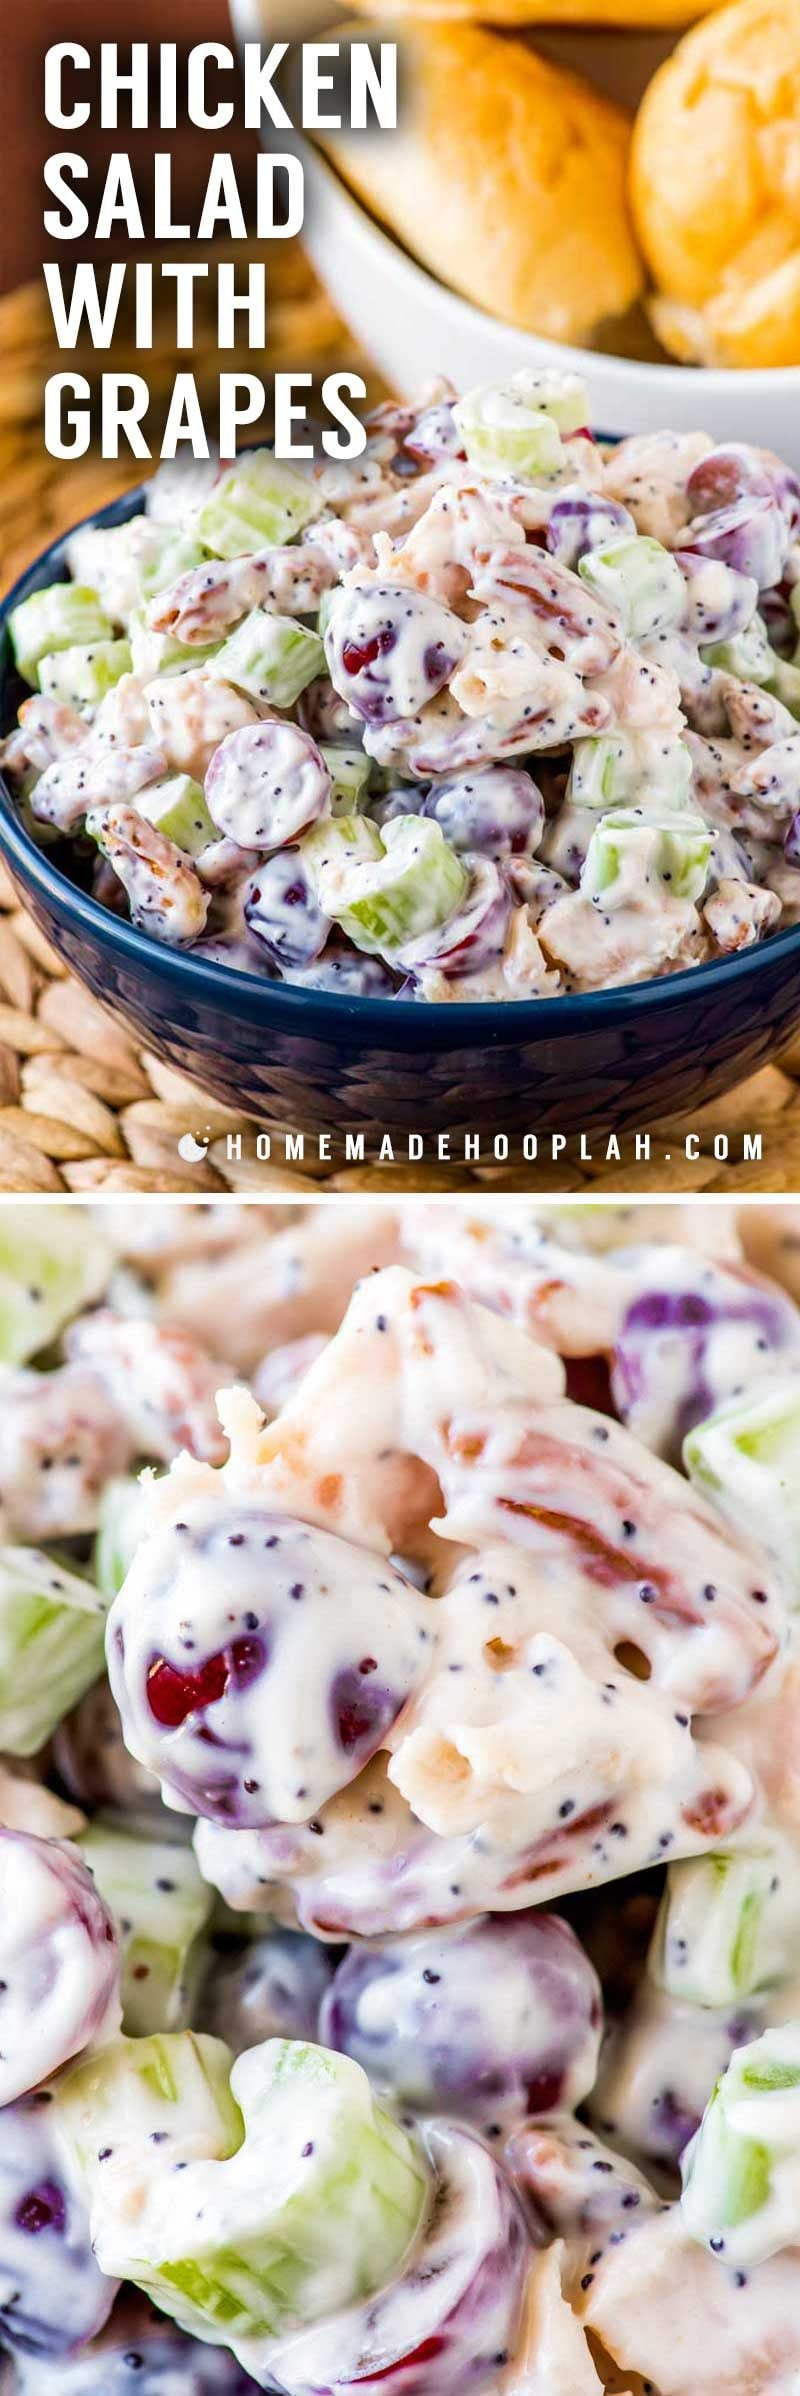 A full tutorial on how to make chicken salad at home.